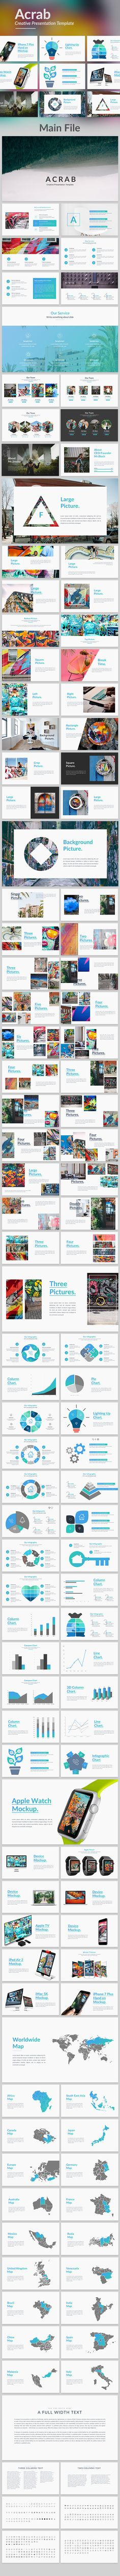 Acrab - Creative Powerpoint Template